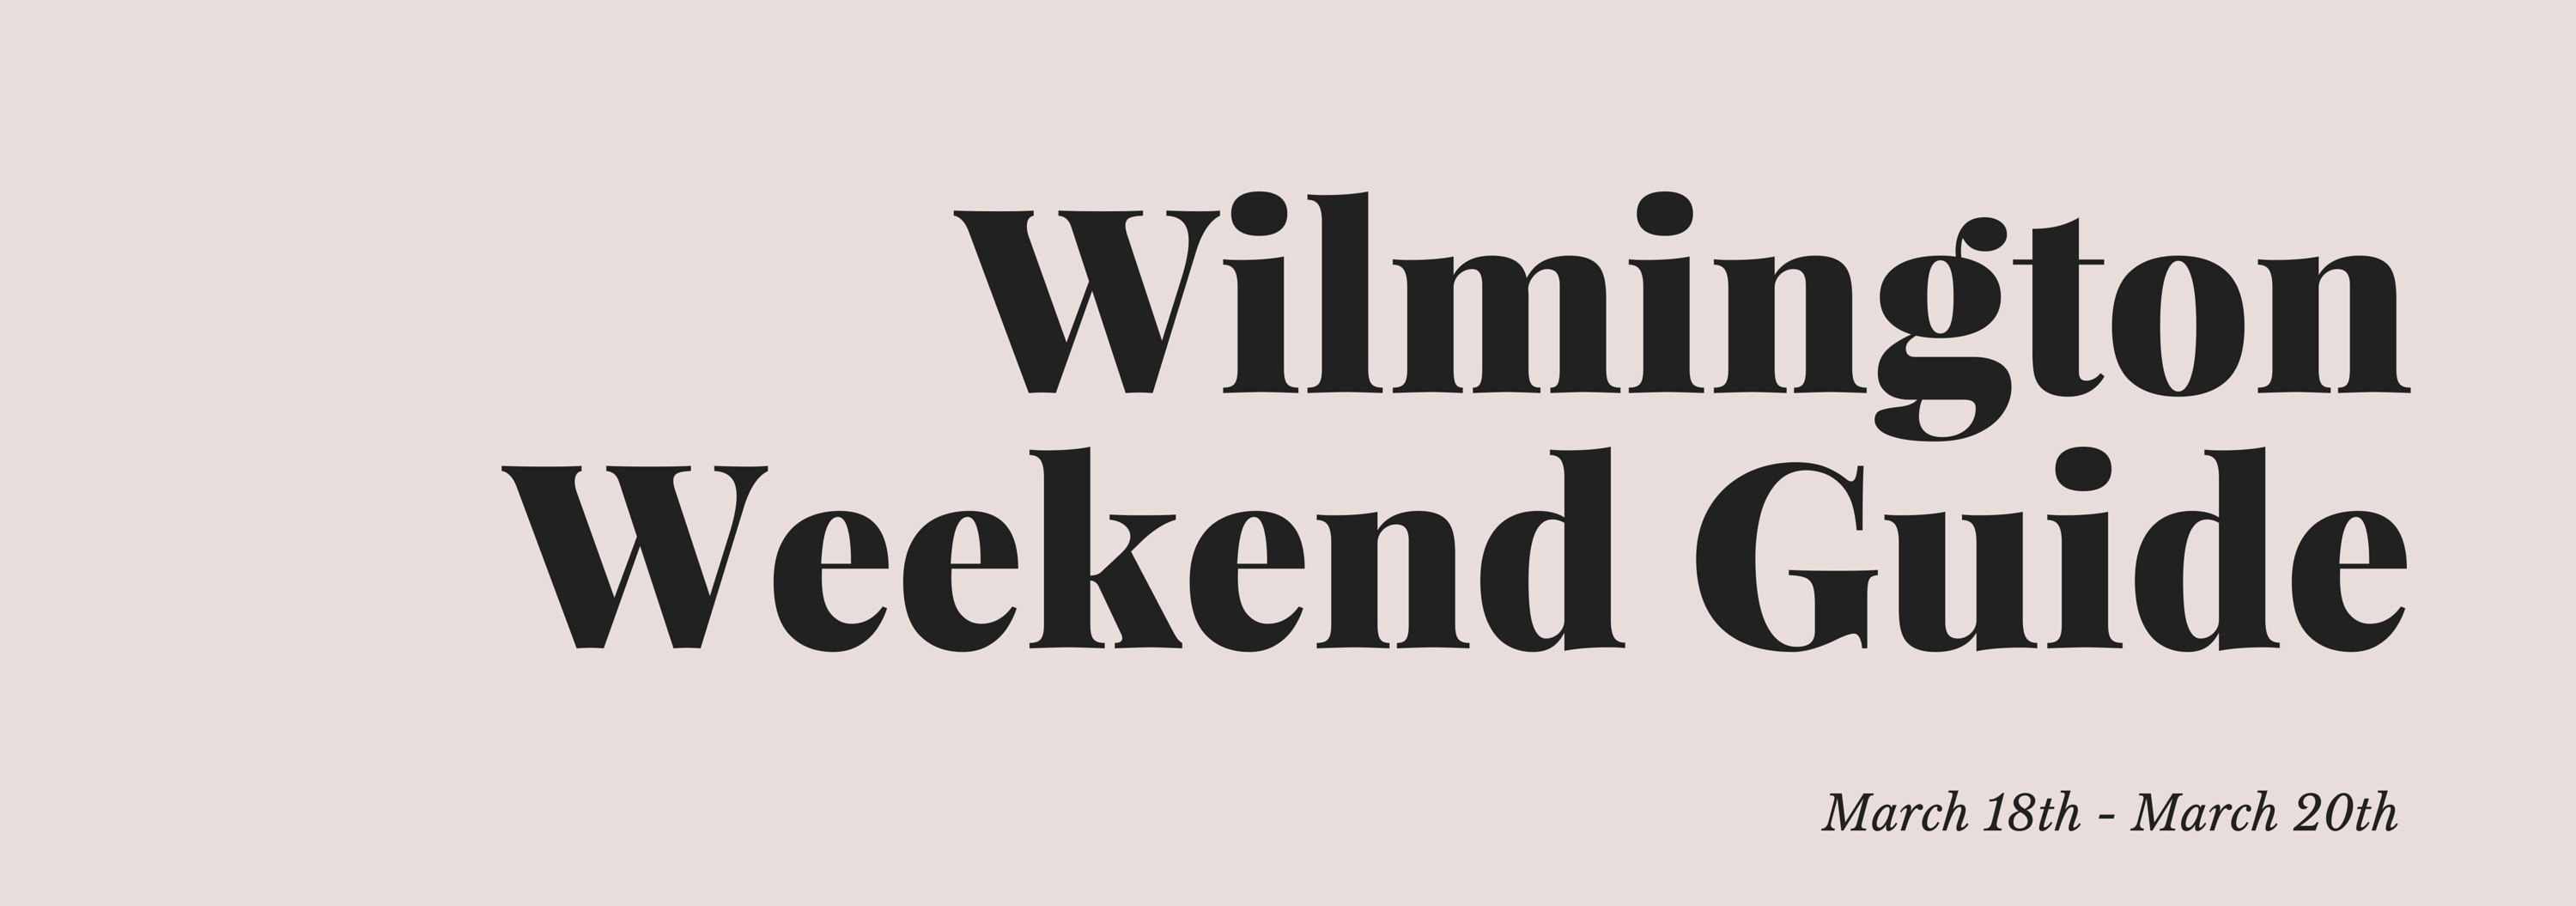 WILMINGTON WEEKEND GUIDE (1)